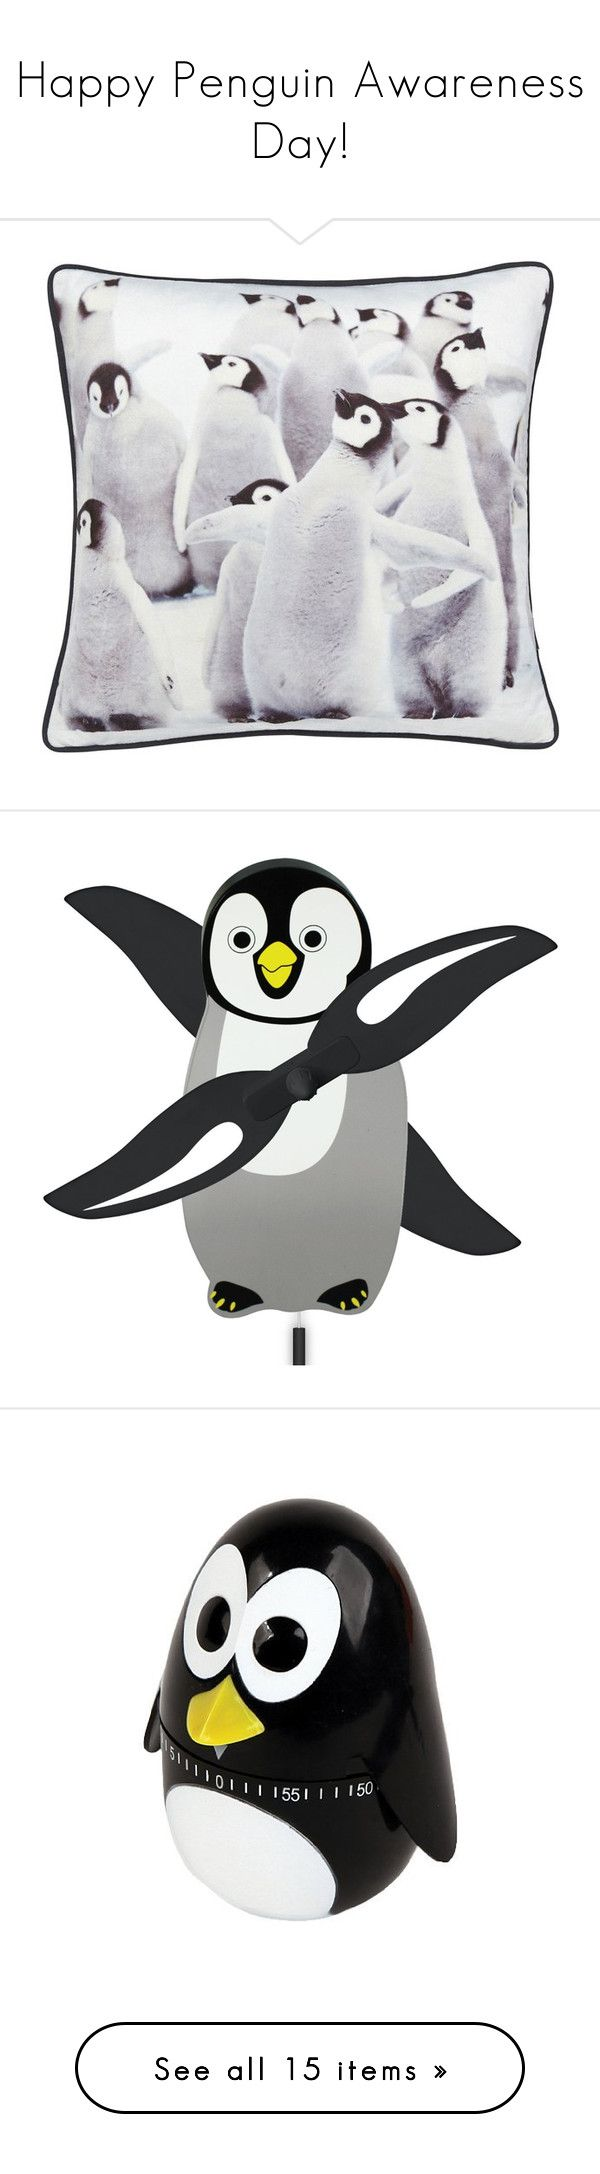 """""""Happy Penguin Awareness Day!"""" by polyvore-editorial ❤ liked on Polyvore featuring penguinawarenessday, home, home decor, throw pillows, kitchen & dining, kitchen gadgets & tools, kikkerland, drinkware, penguin mug and stackable coffee cups"""